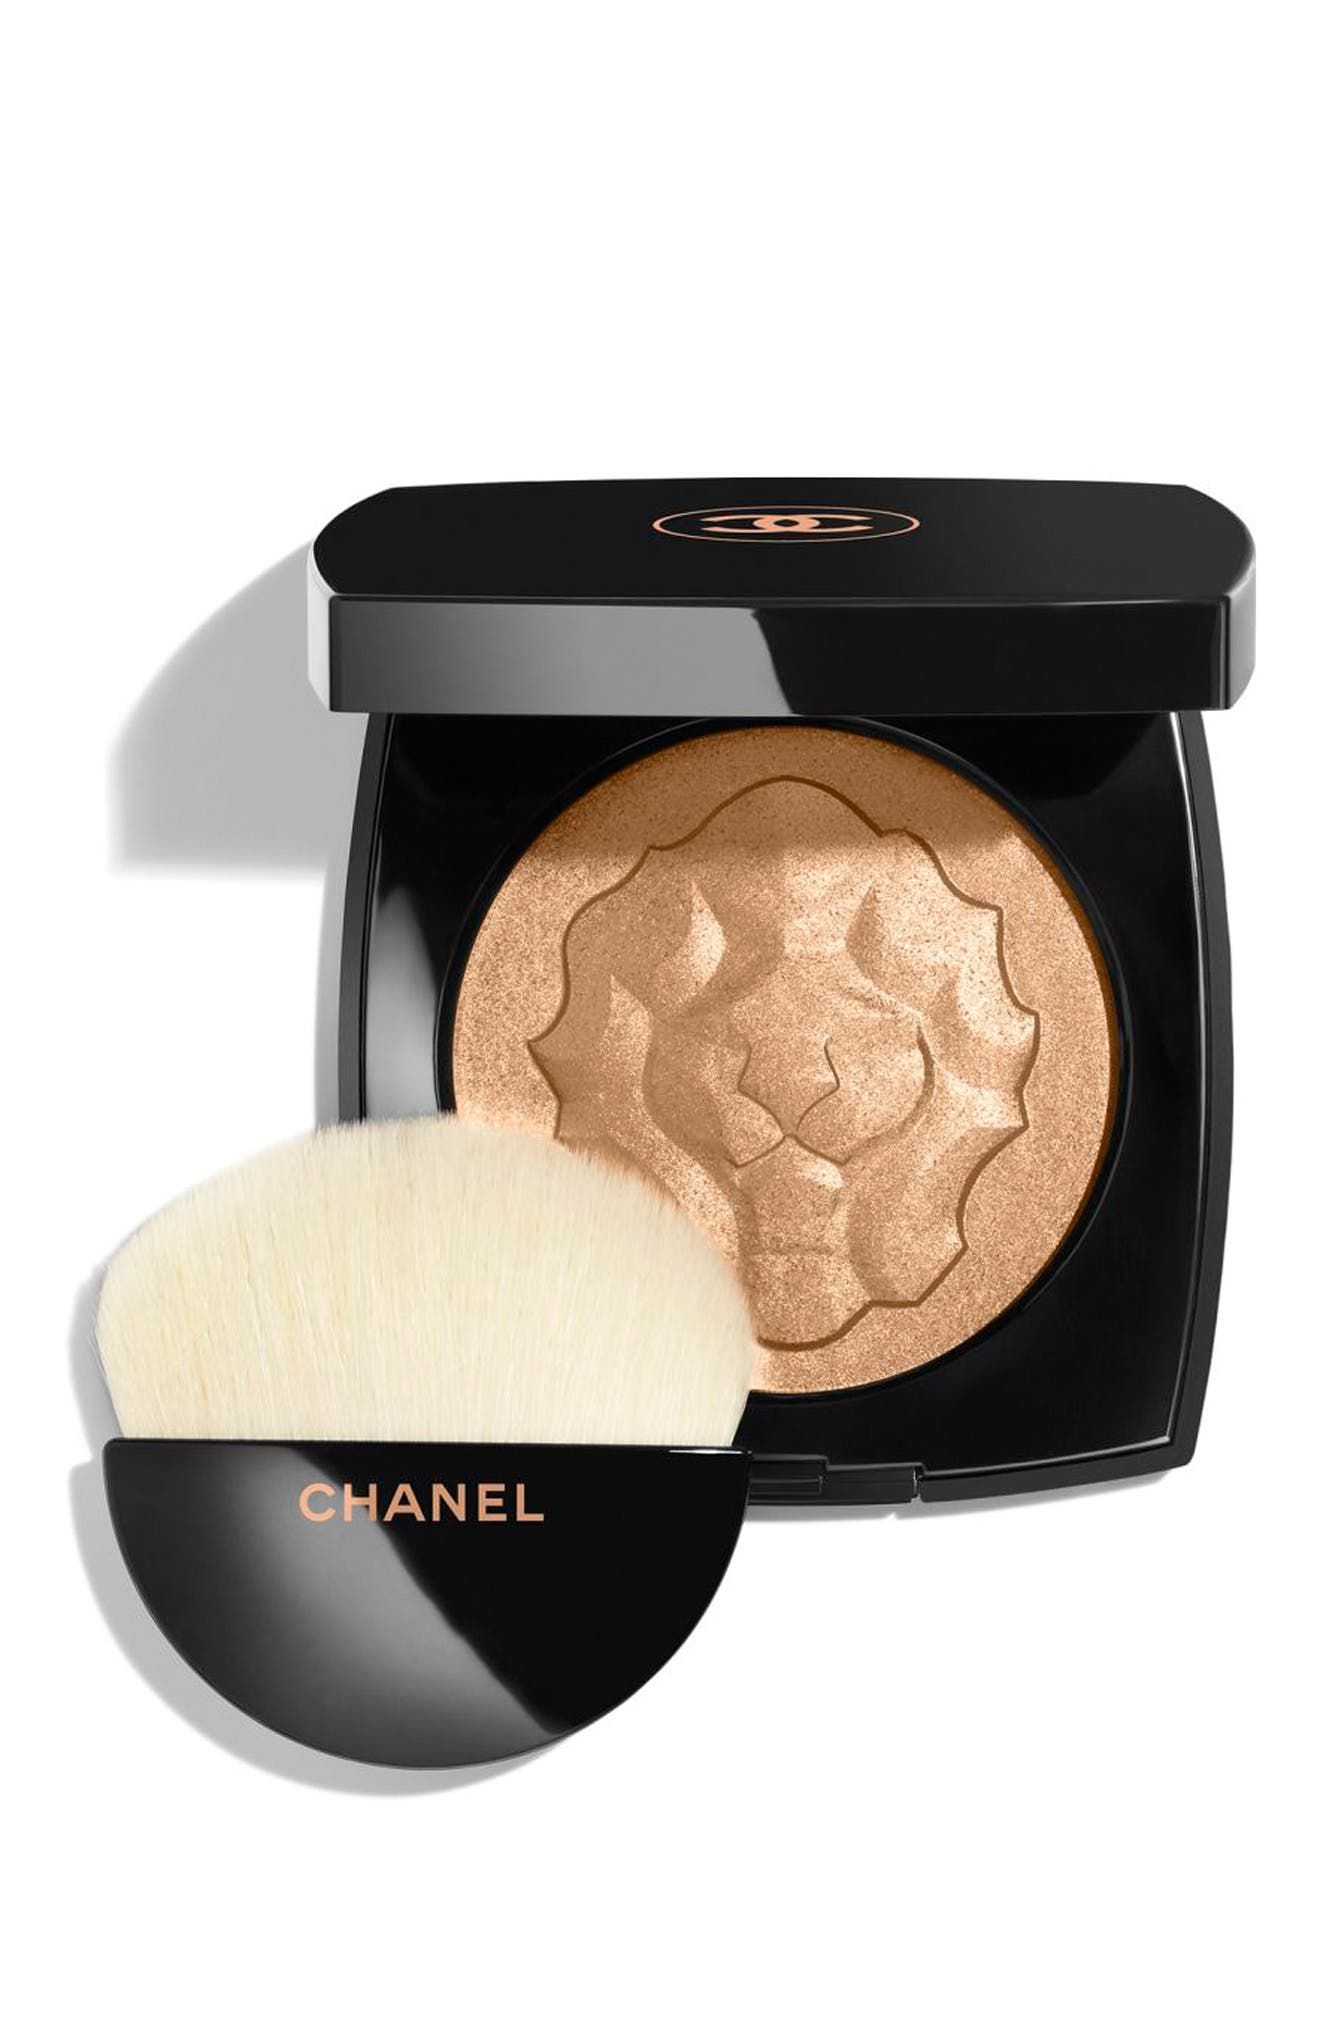 CHANEL LE LION DE CHANEL<br />Illuminating Powder, Main, color, NO COLOR